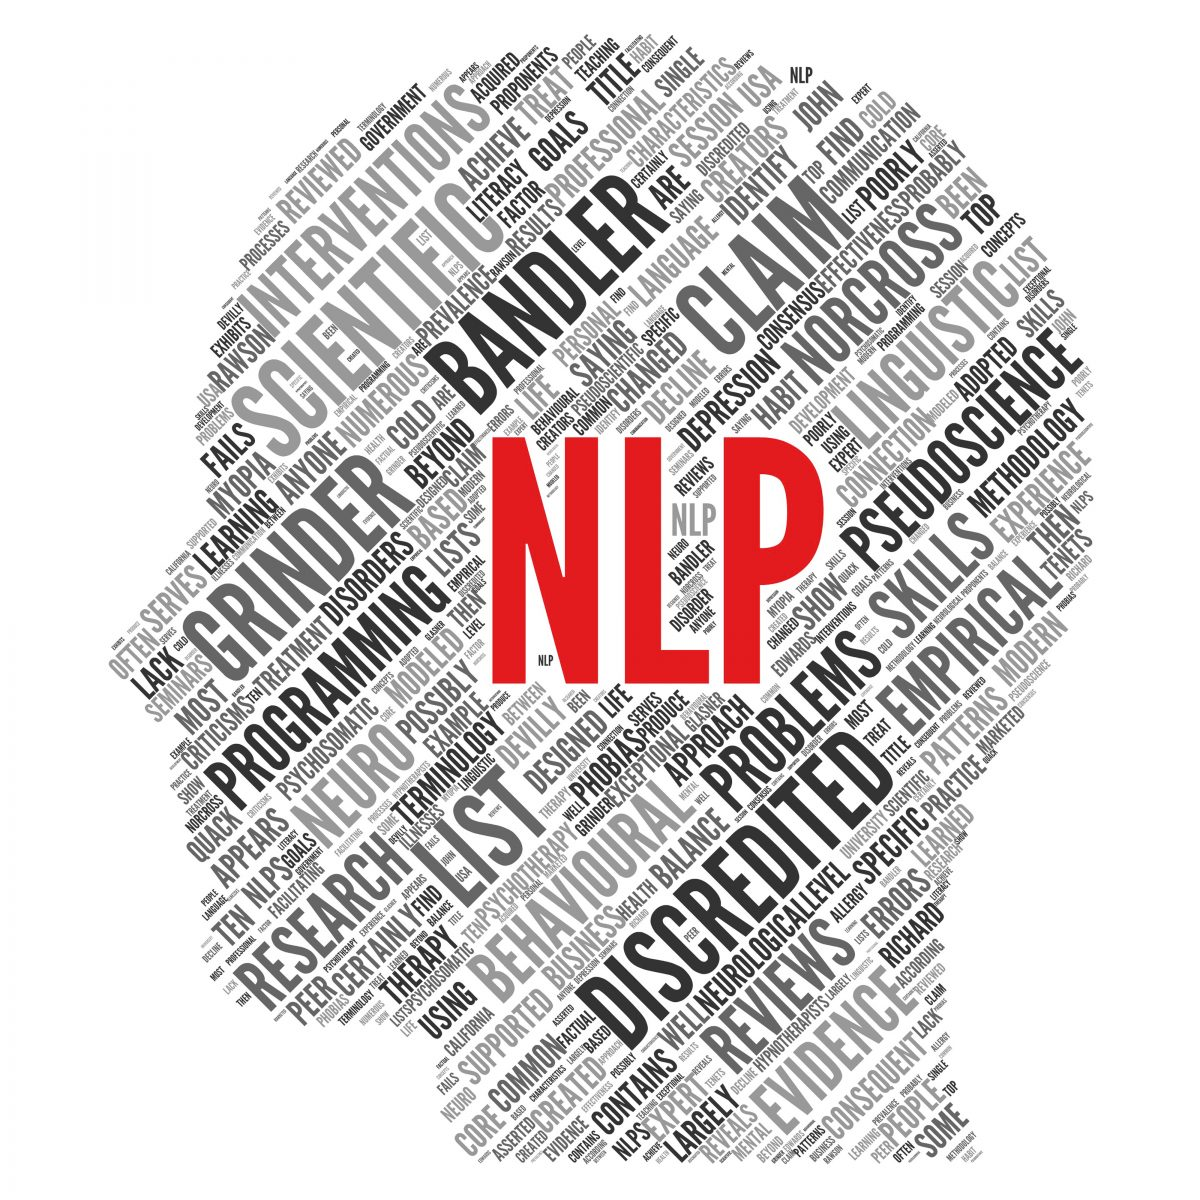 Neuro linguistic programming techniques dating websites